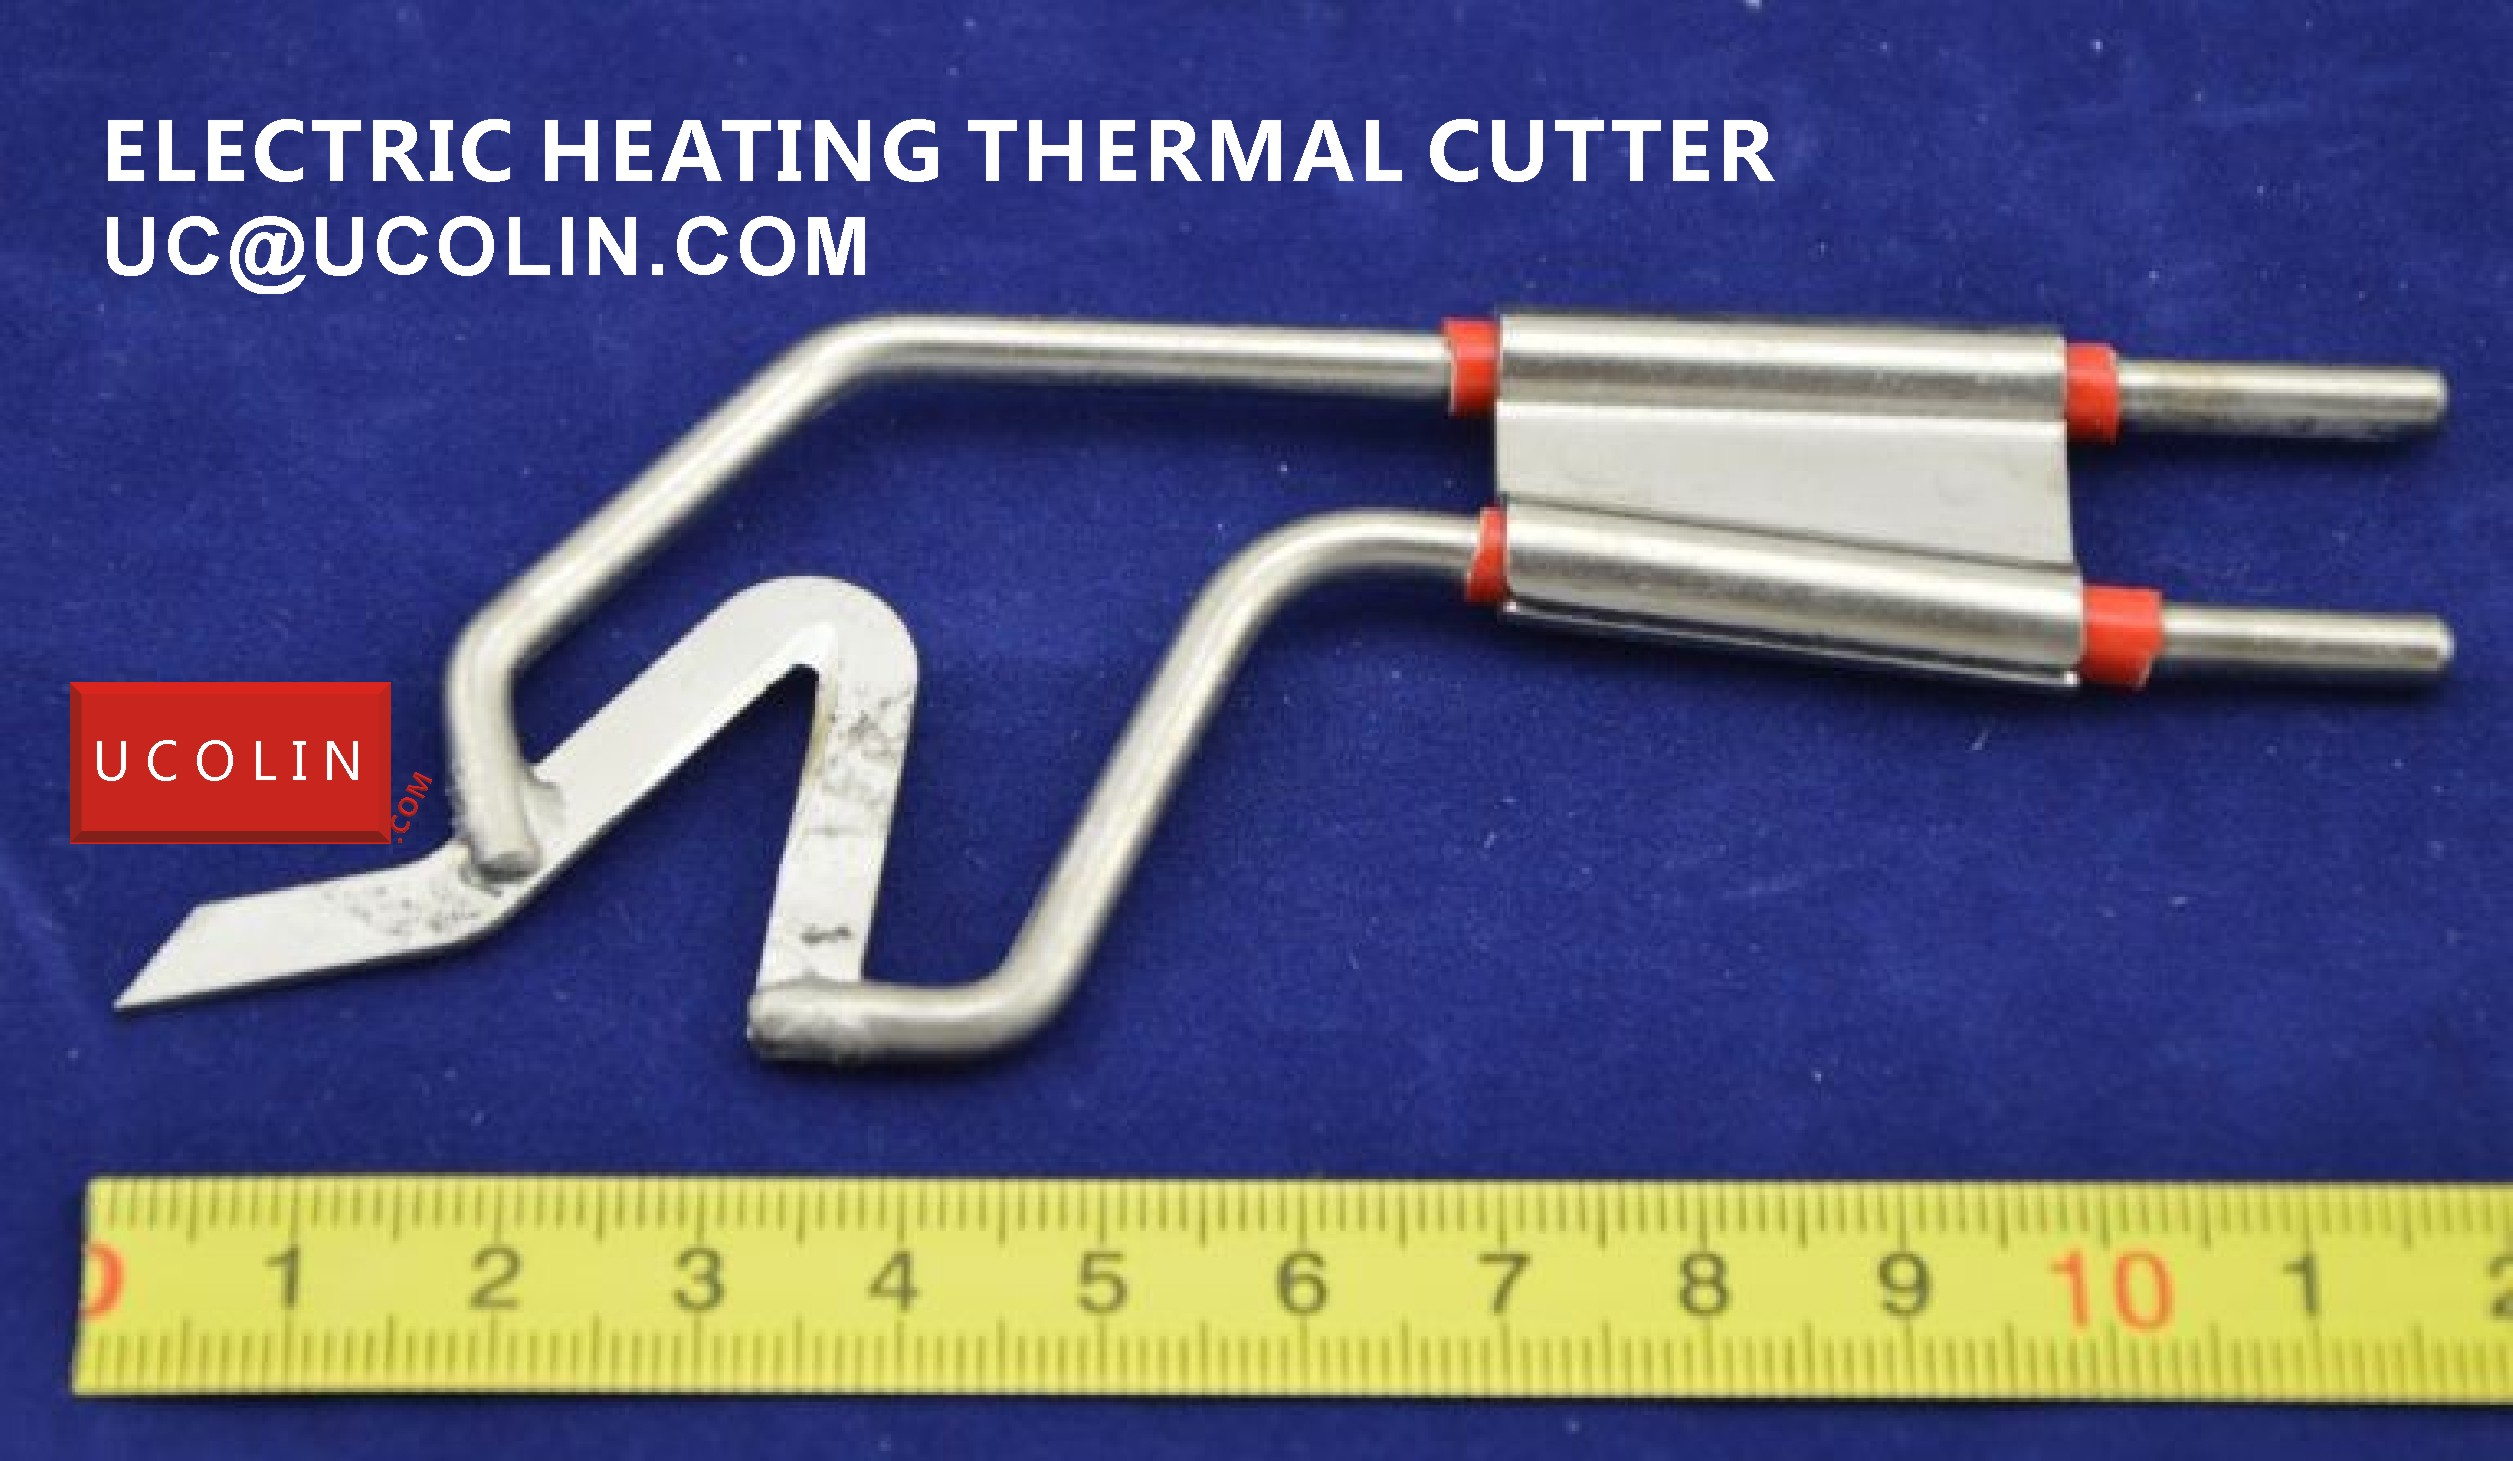 006 ELECTRIC HEATING CUTTER FOR SATINE RIBBON